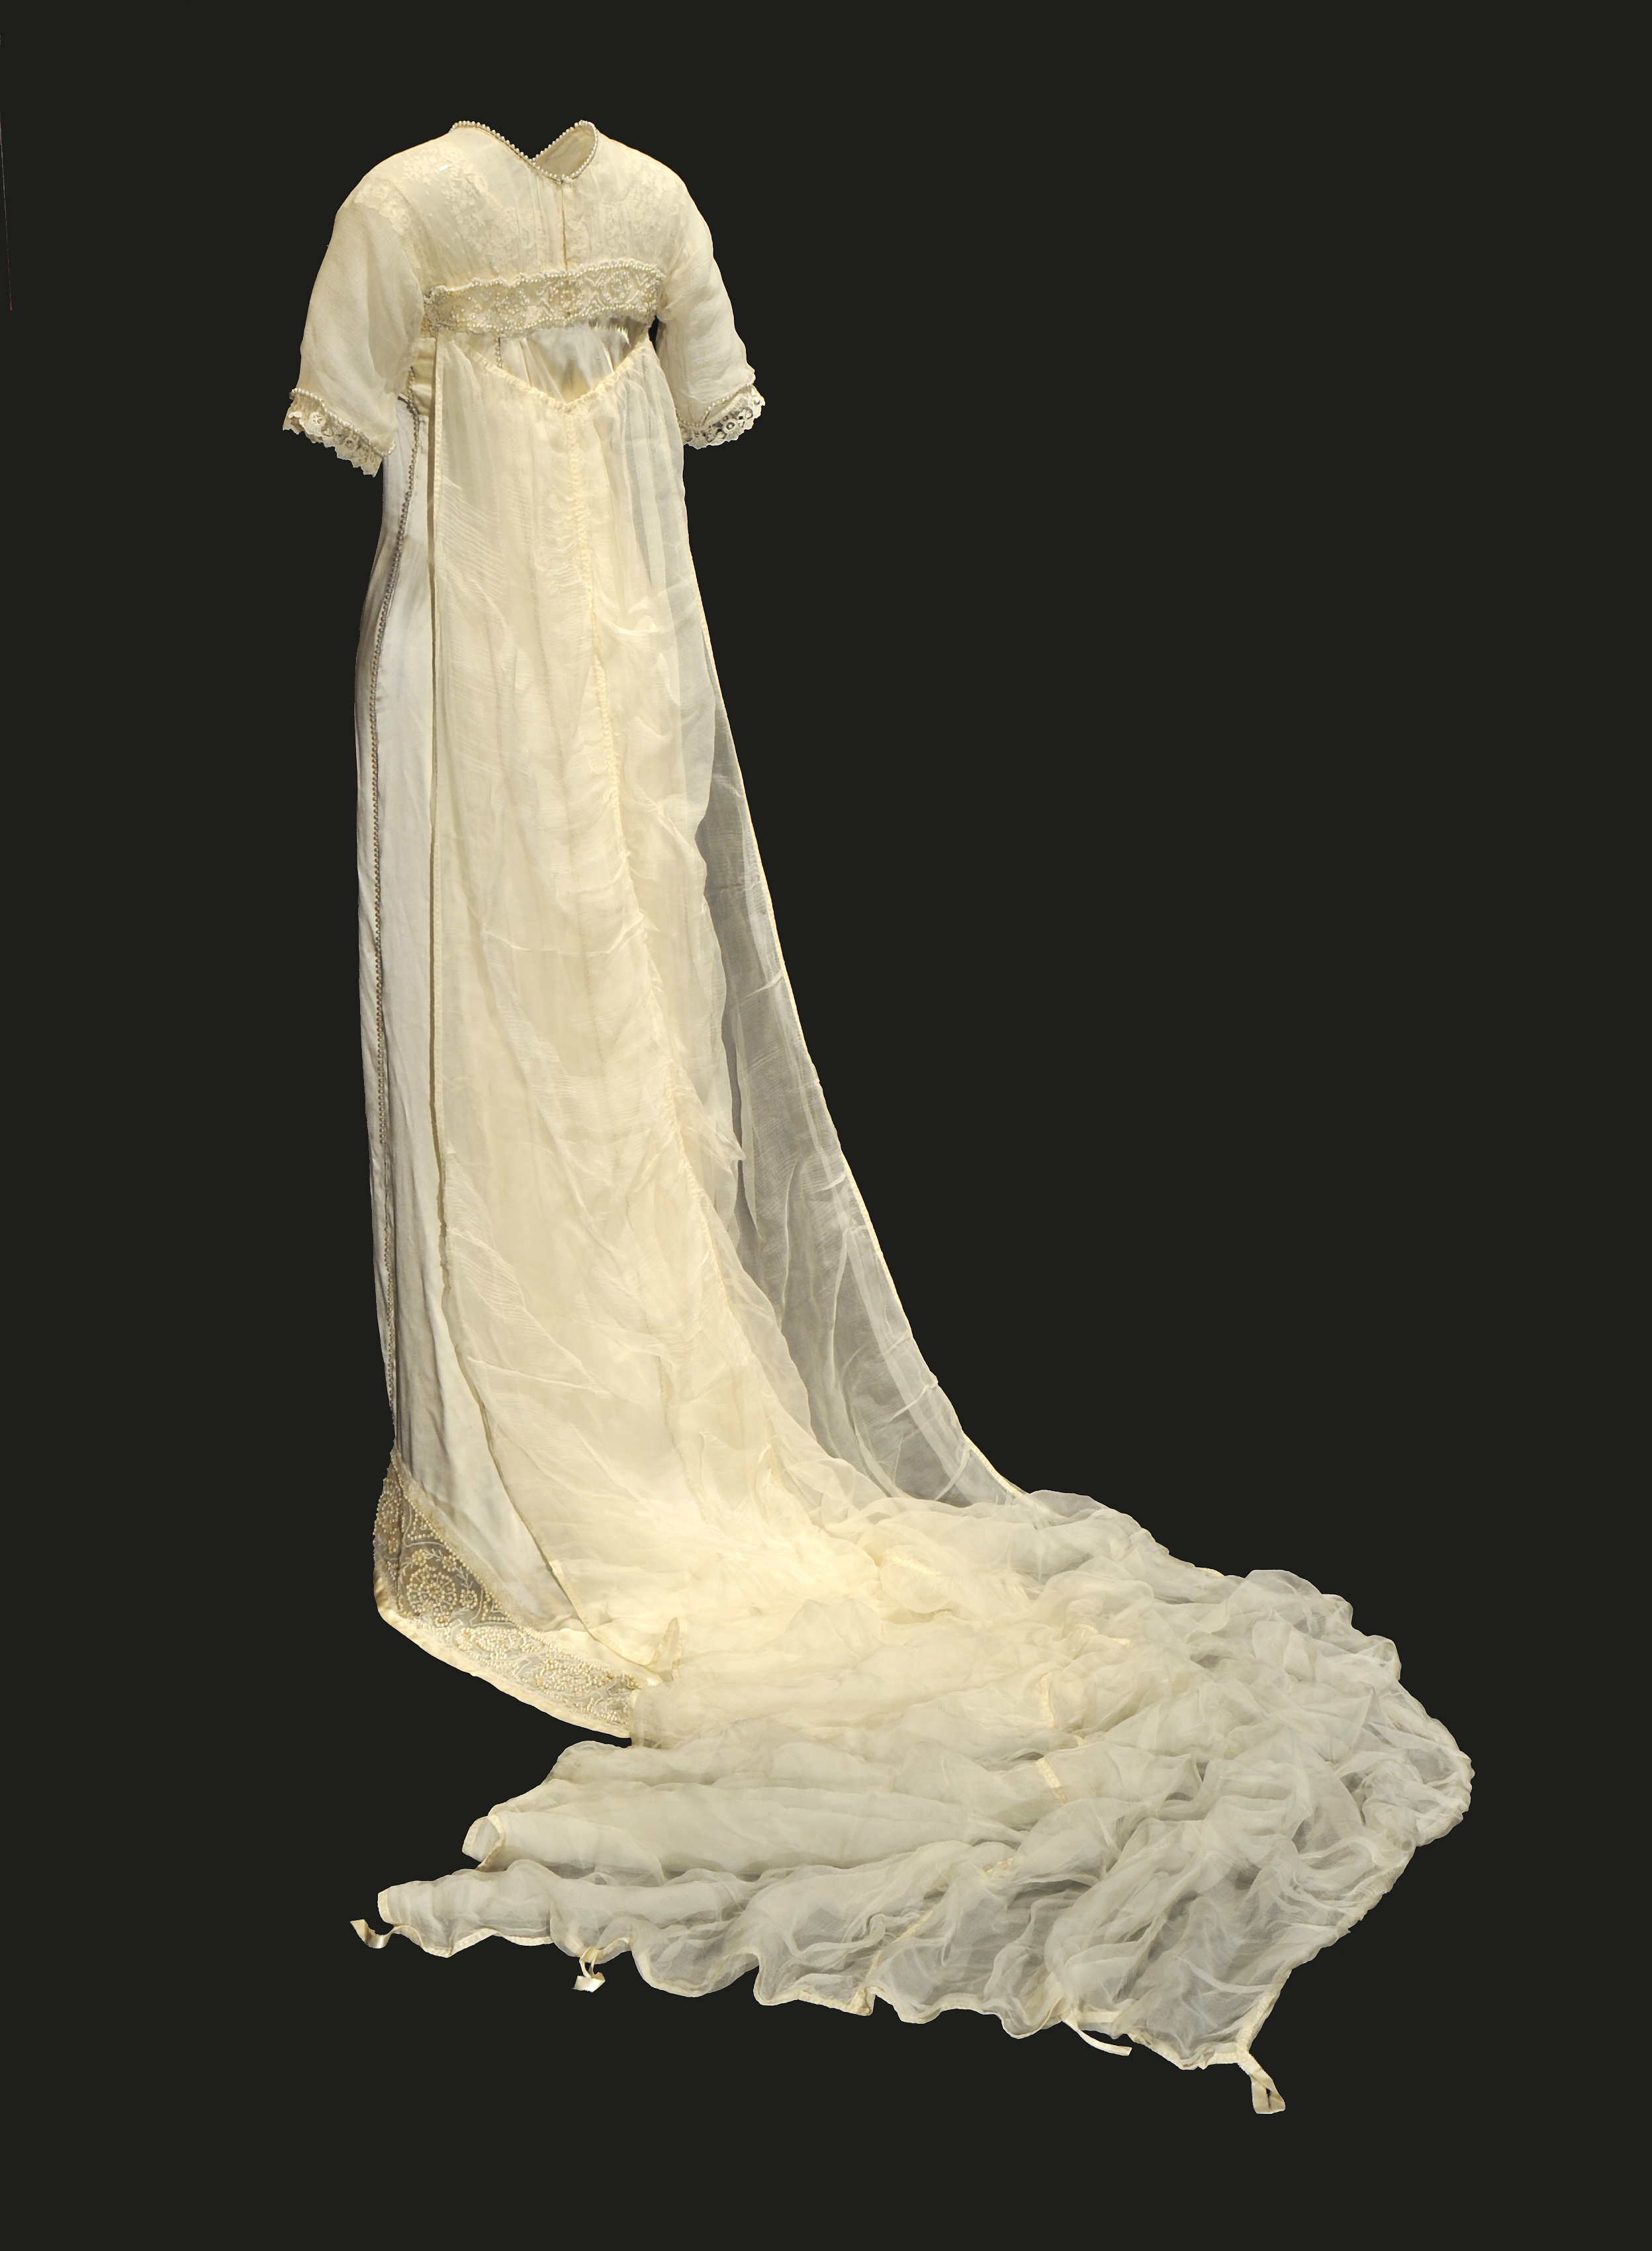 1912 Lucile Wedding Dress With Chiffon Train The Bowes